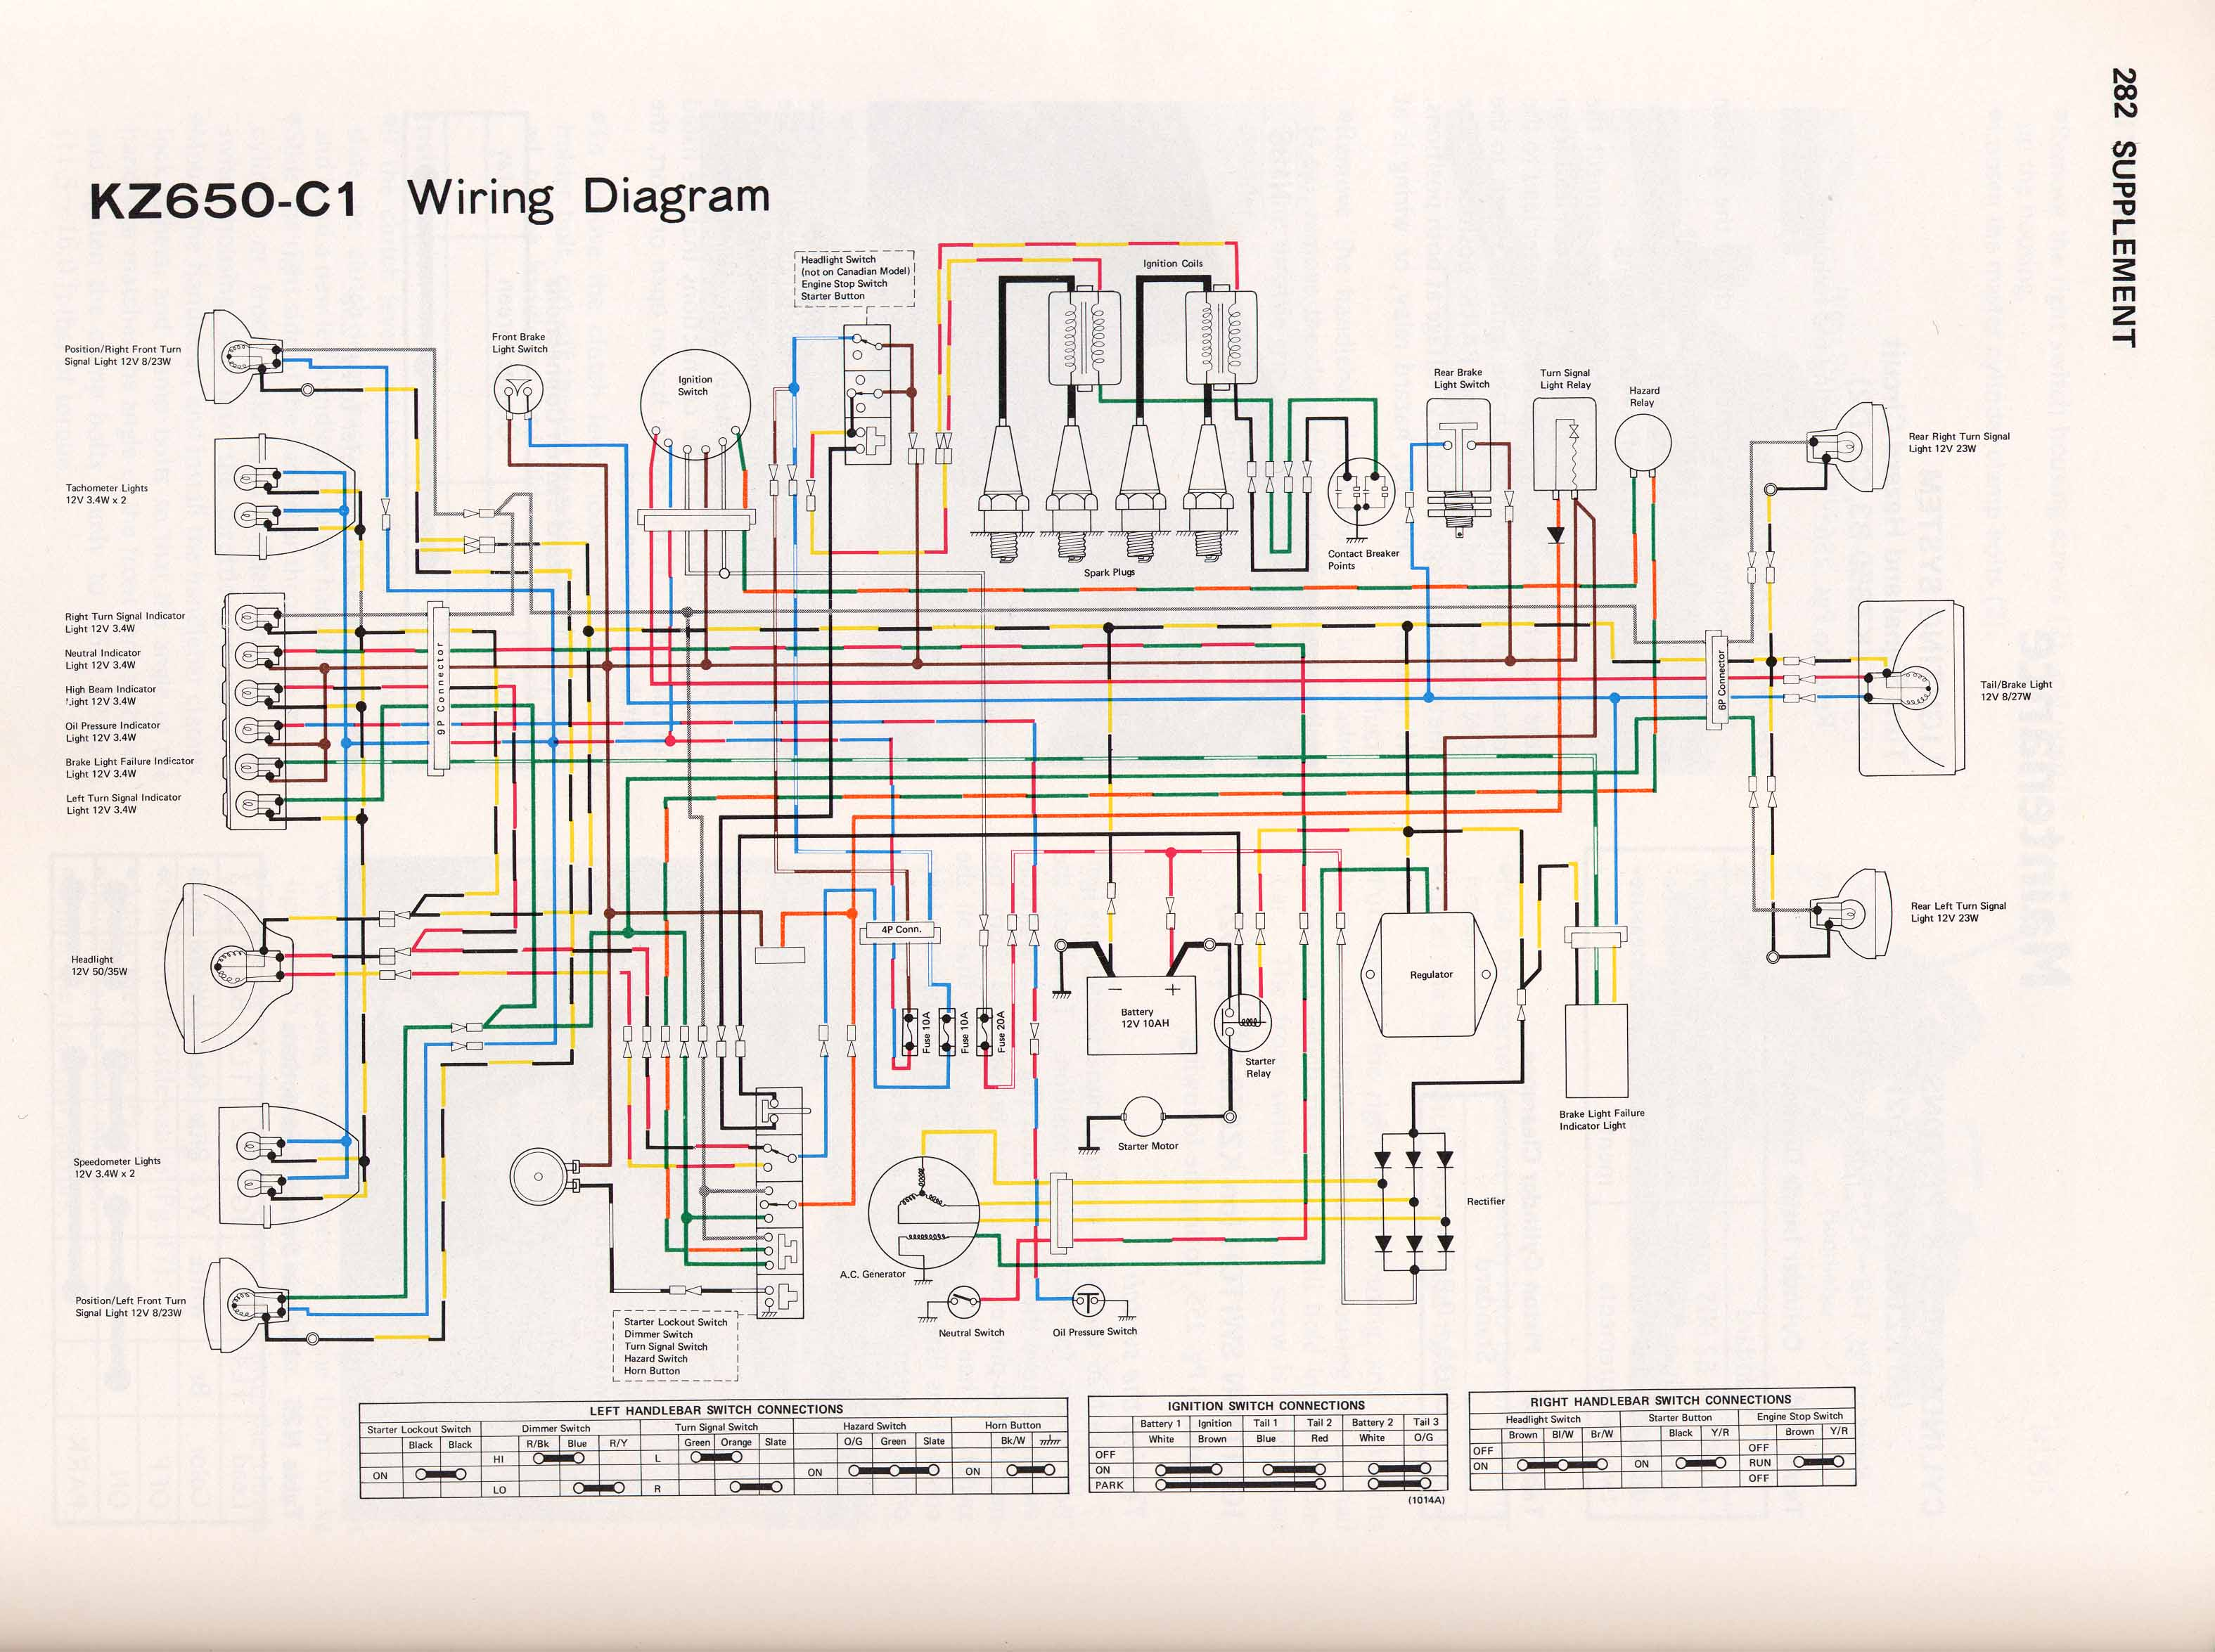 KZ650 C1 kz650 info wiring diagrams 1981 kawasaki kz750 wiring harness at readyjetset.co